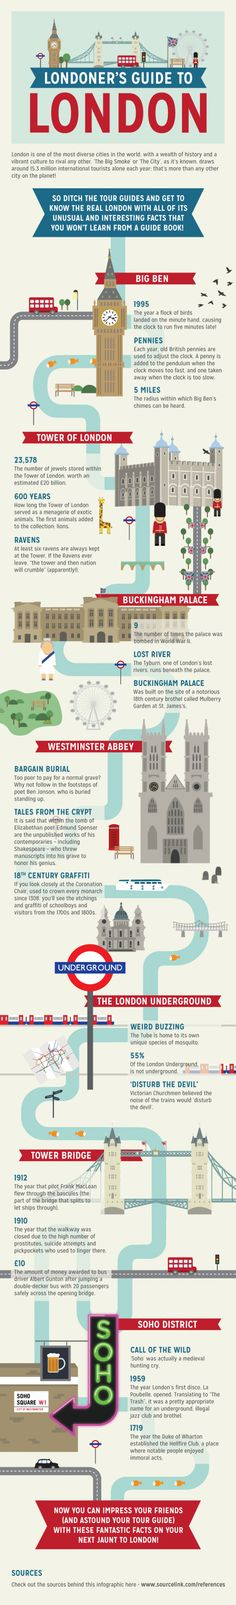 londoners-guide-to-london